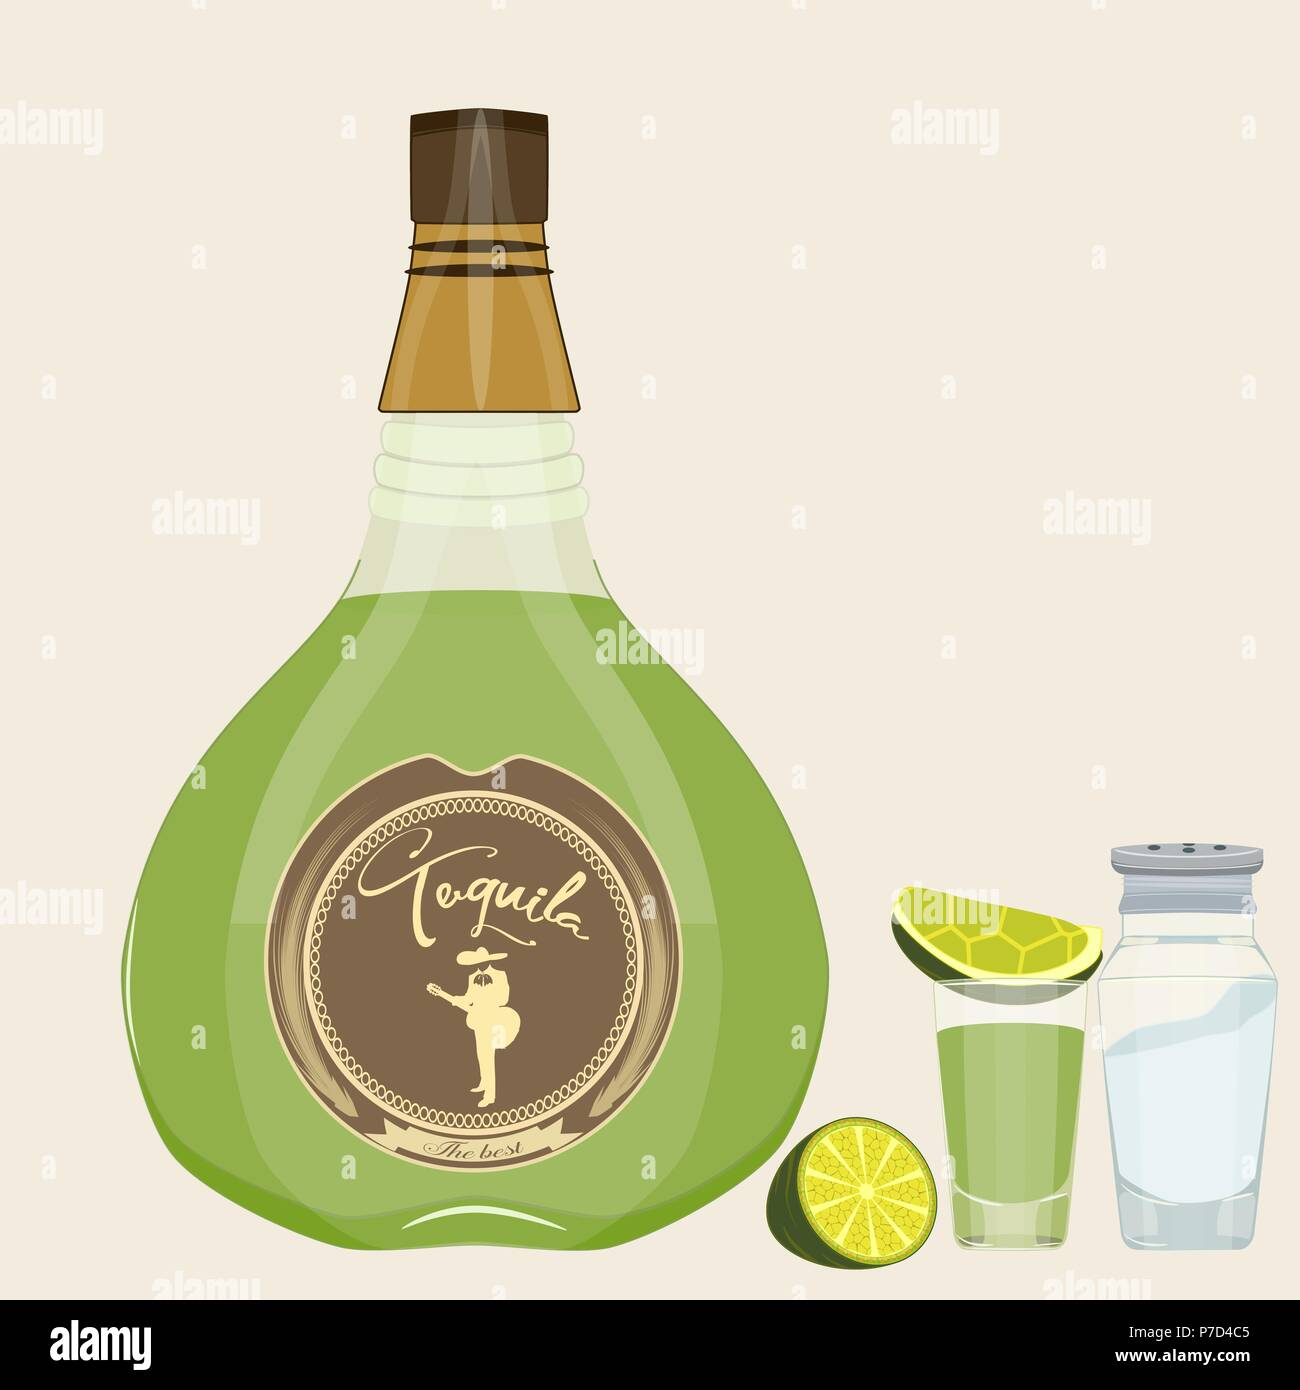 Tequila set. Vector isolated illustration of tequila bottle, shot glass with slice of lime and salt. Tequila bottle packaging with label mock up. Flat Stock Vector